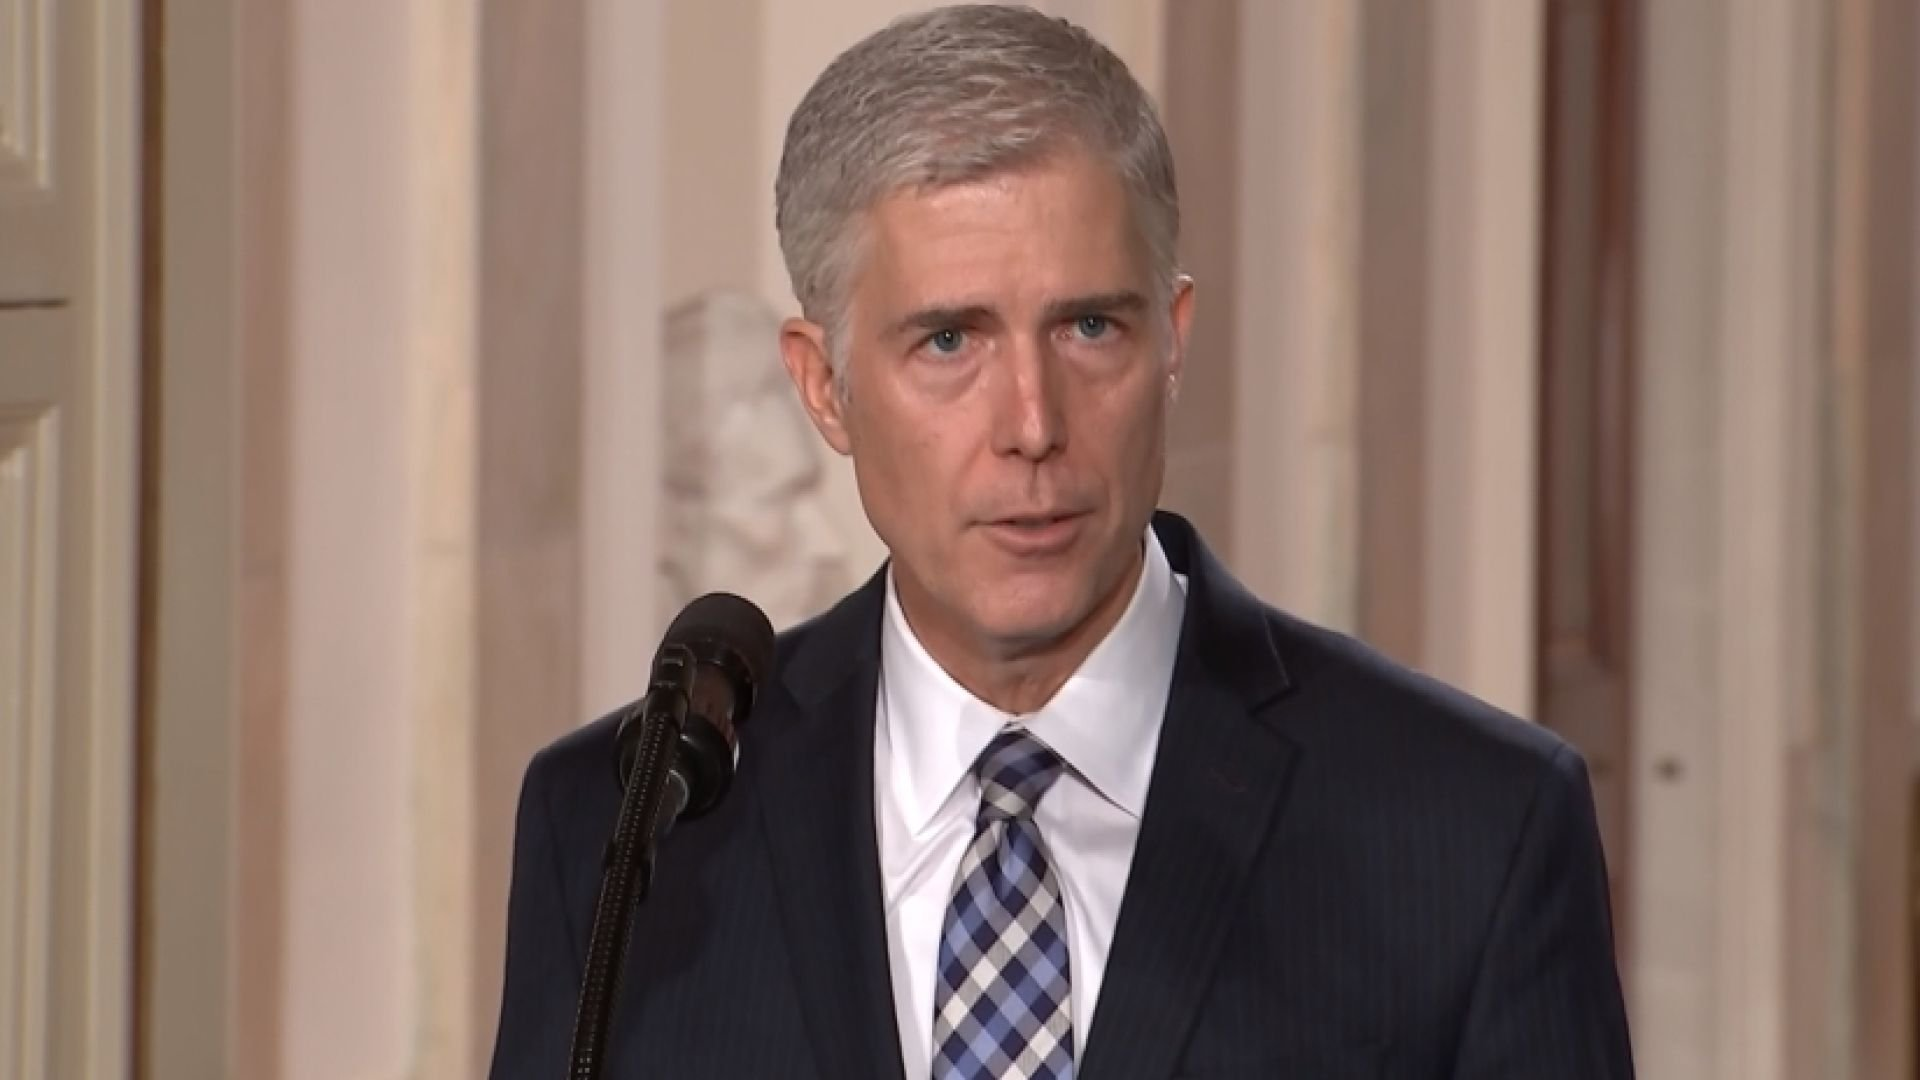 Supreme Court nominee Neil Gorsuch currently serves on the 10th Circuit Court of Appeals in Denver. (NBC News)